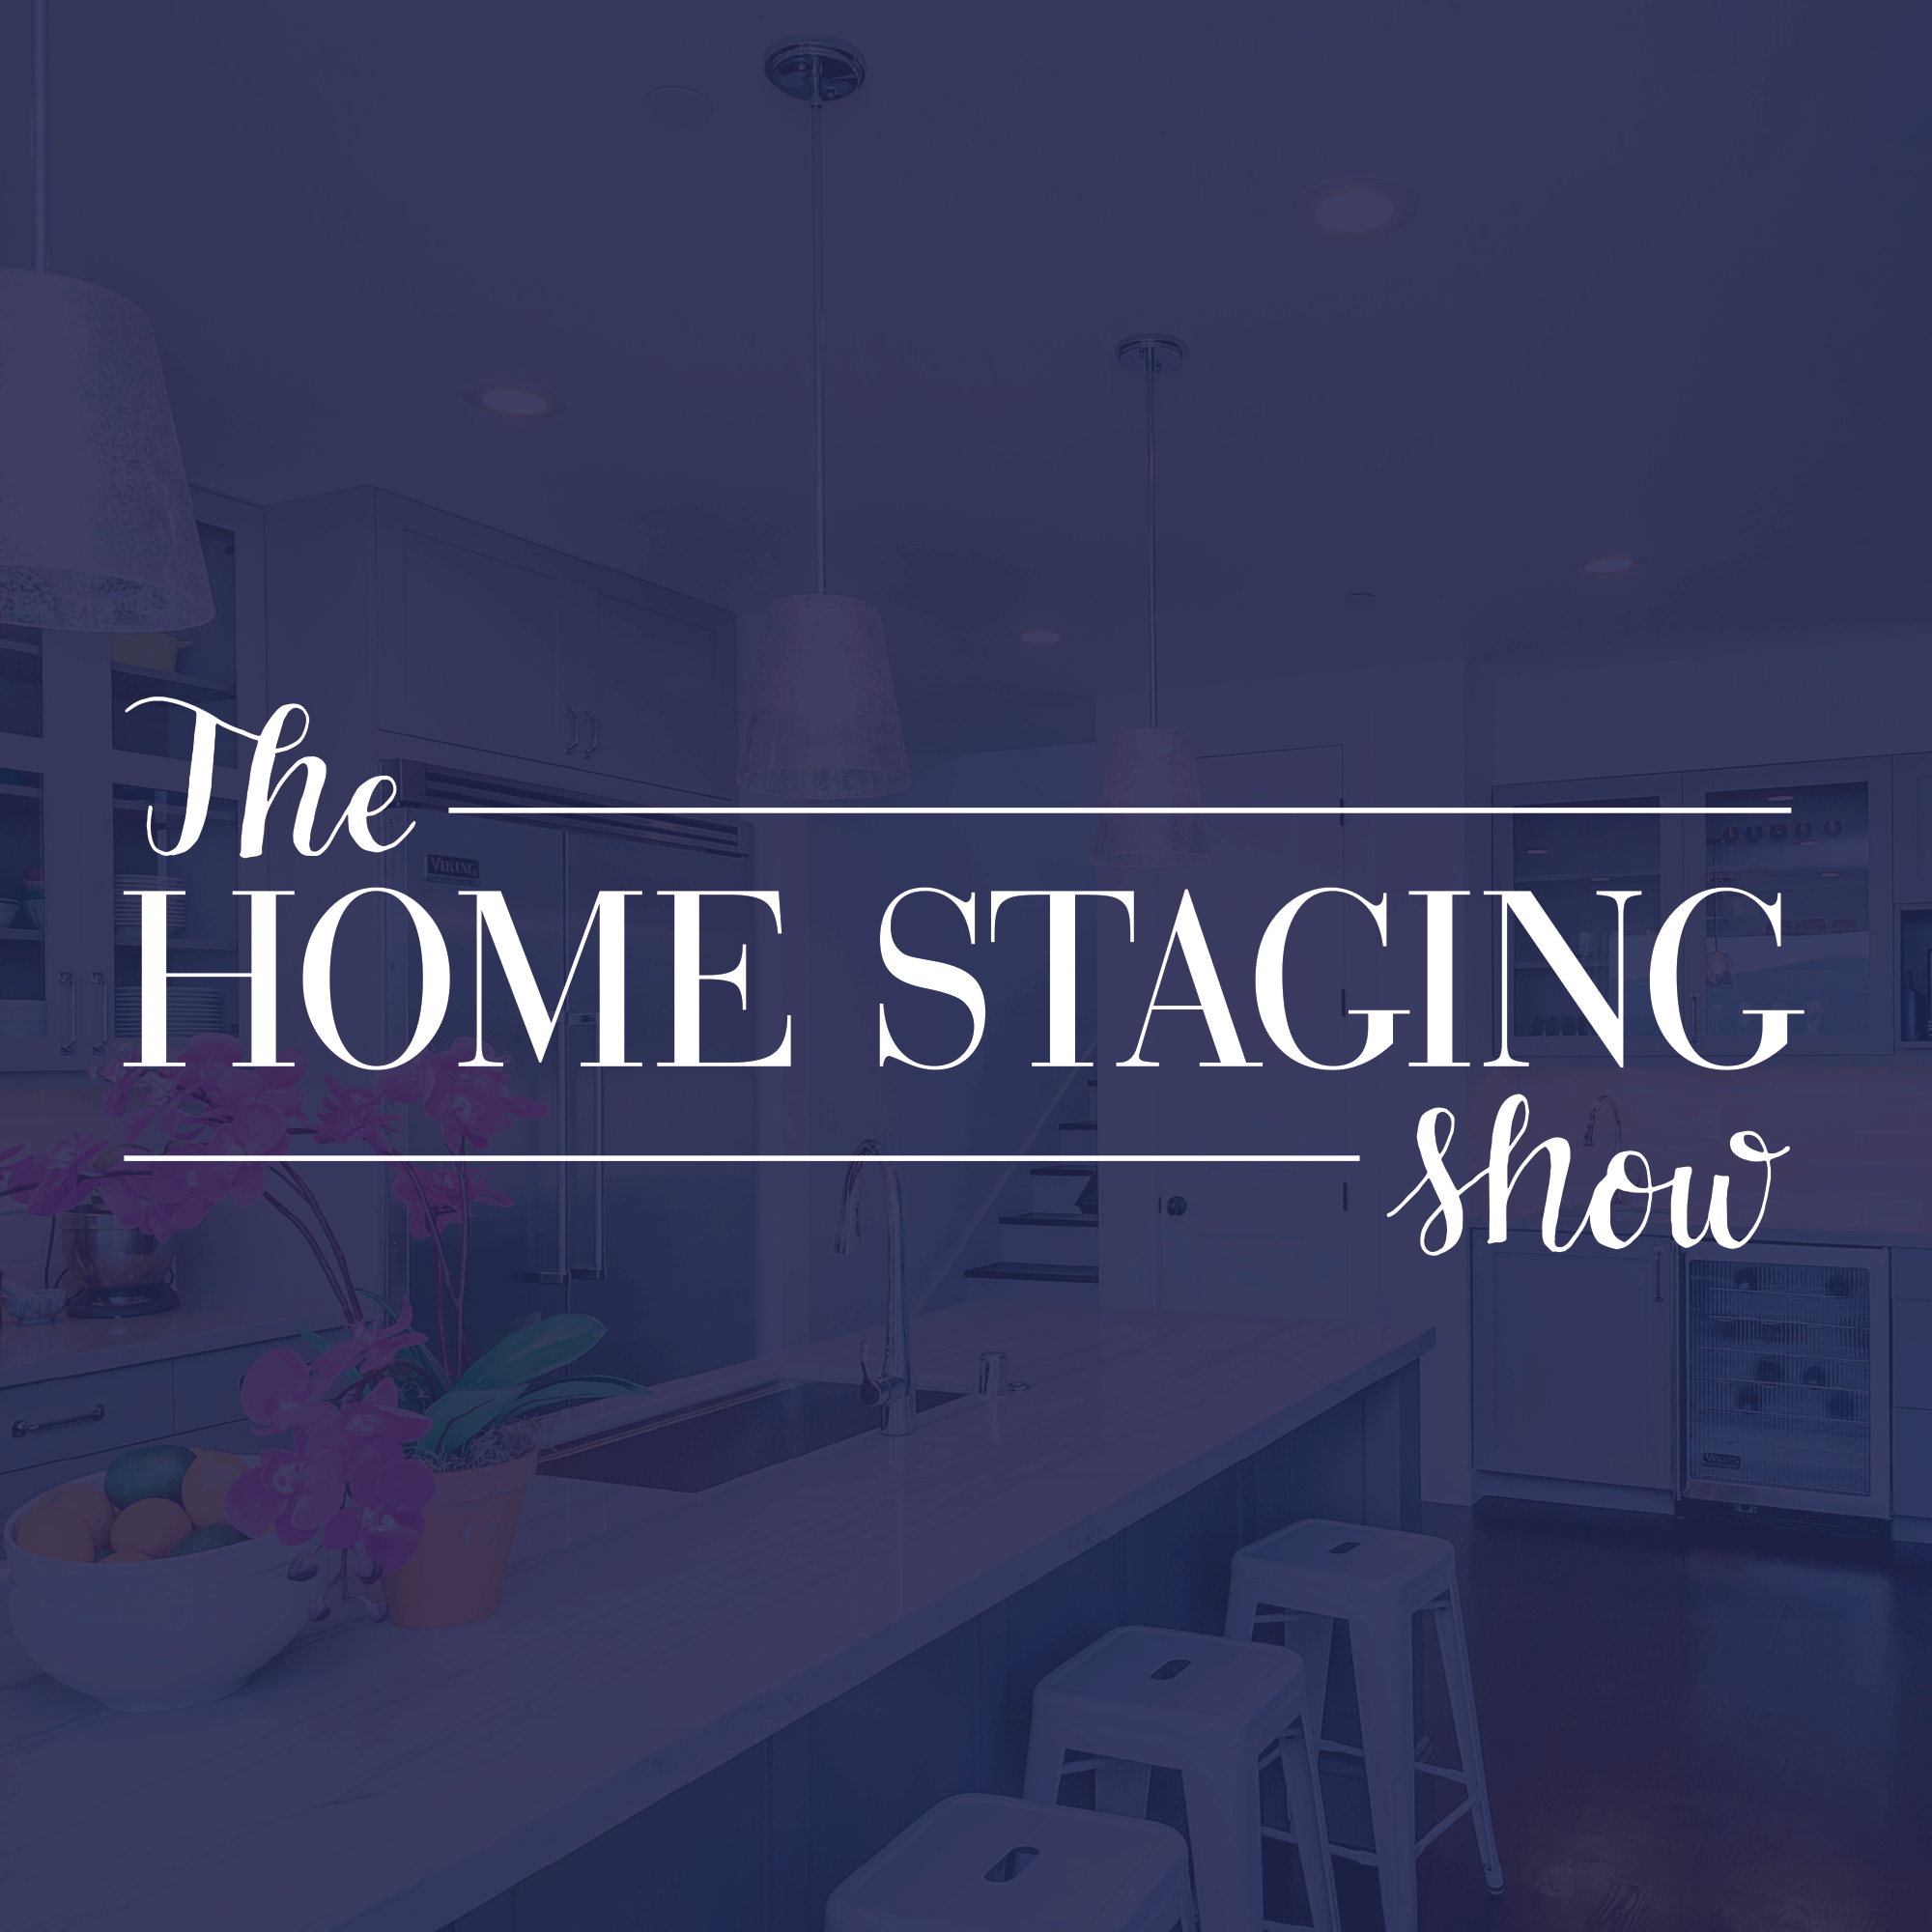 The Home Staging Show Podcast by Staged4more School of Home Staging